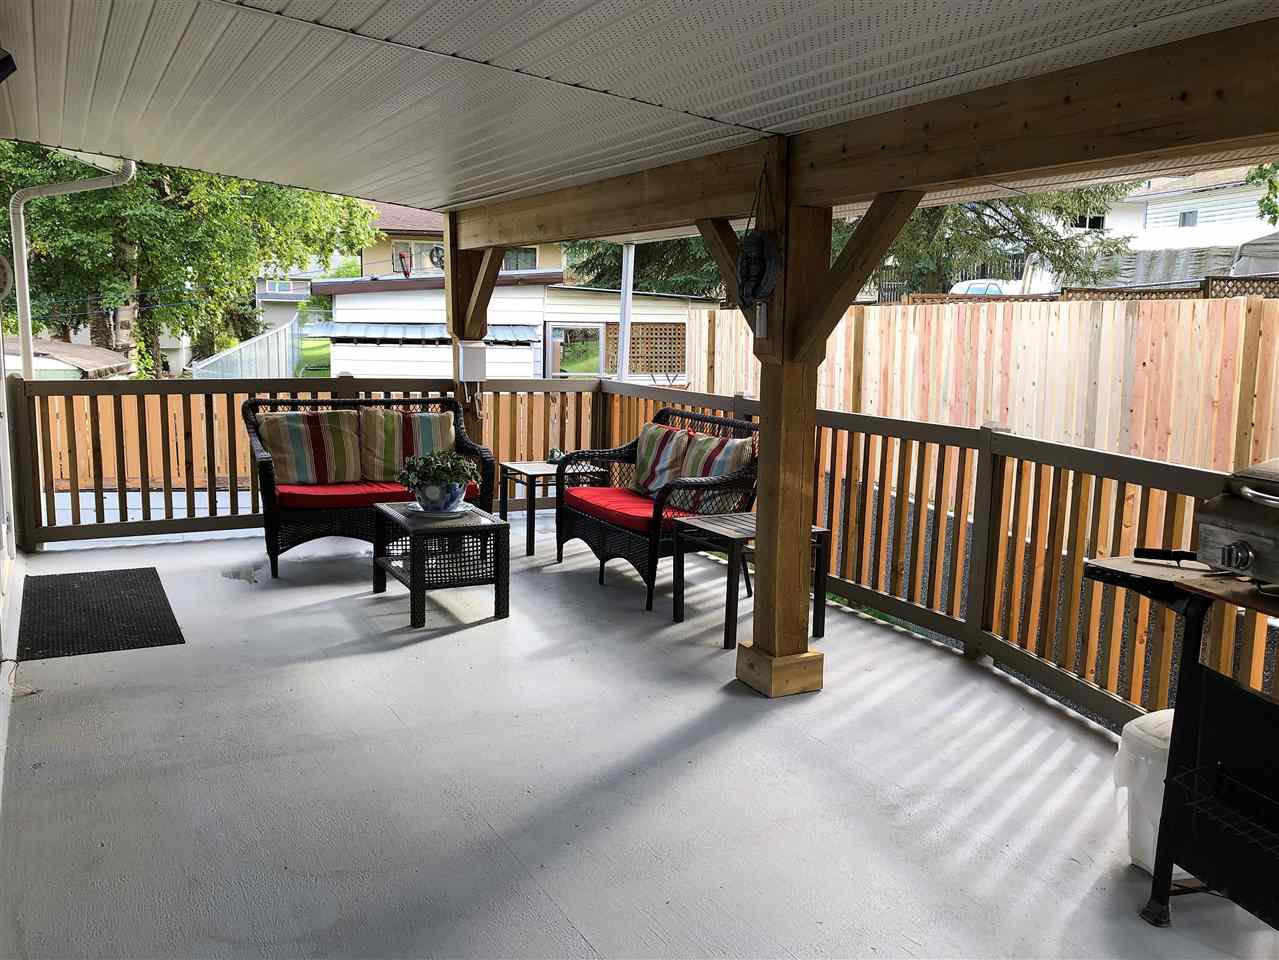 Photo 14: Photos: 1270 LEWIS Drive in Quesnel: Quesnel - Town House for sale (Quesnel (Zone 28))  : MLS®# R2478328